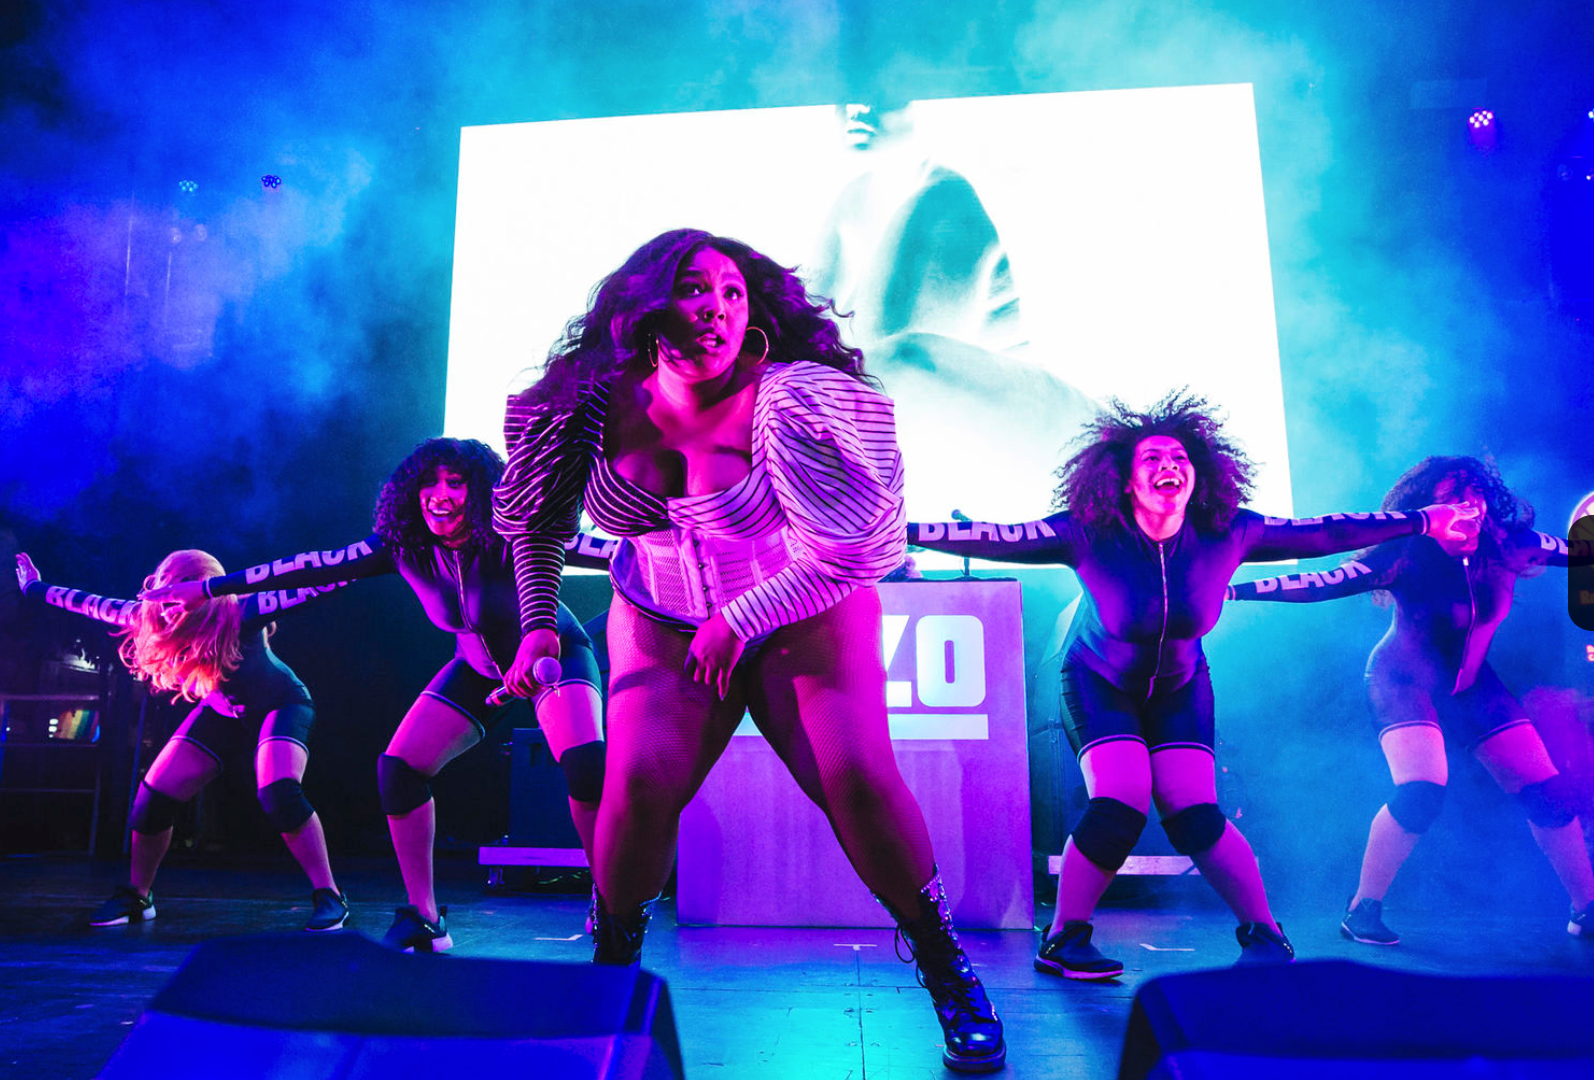 LIZZO JUICE ALBUM LAUNCH PARTY CRAZY GIRLS GRAMMY PARTY SINGLE RELEASE